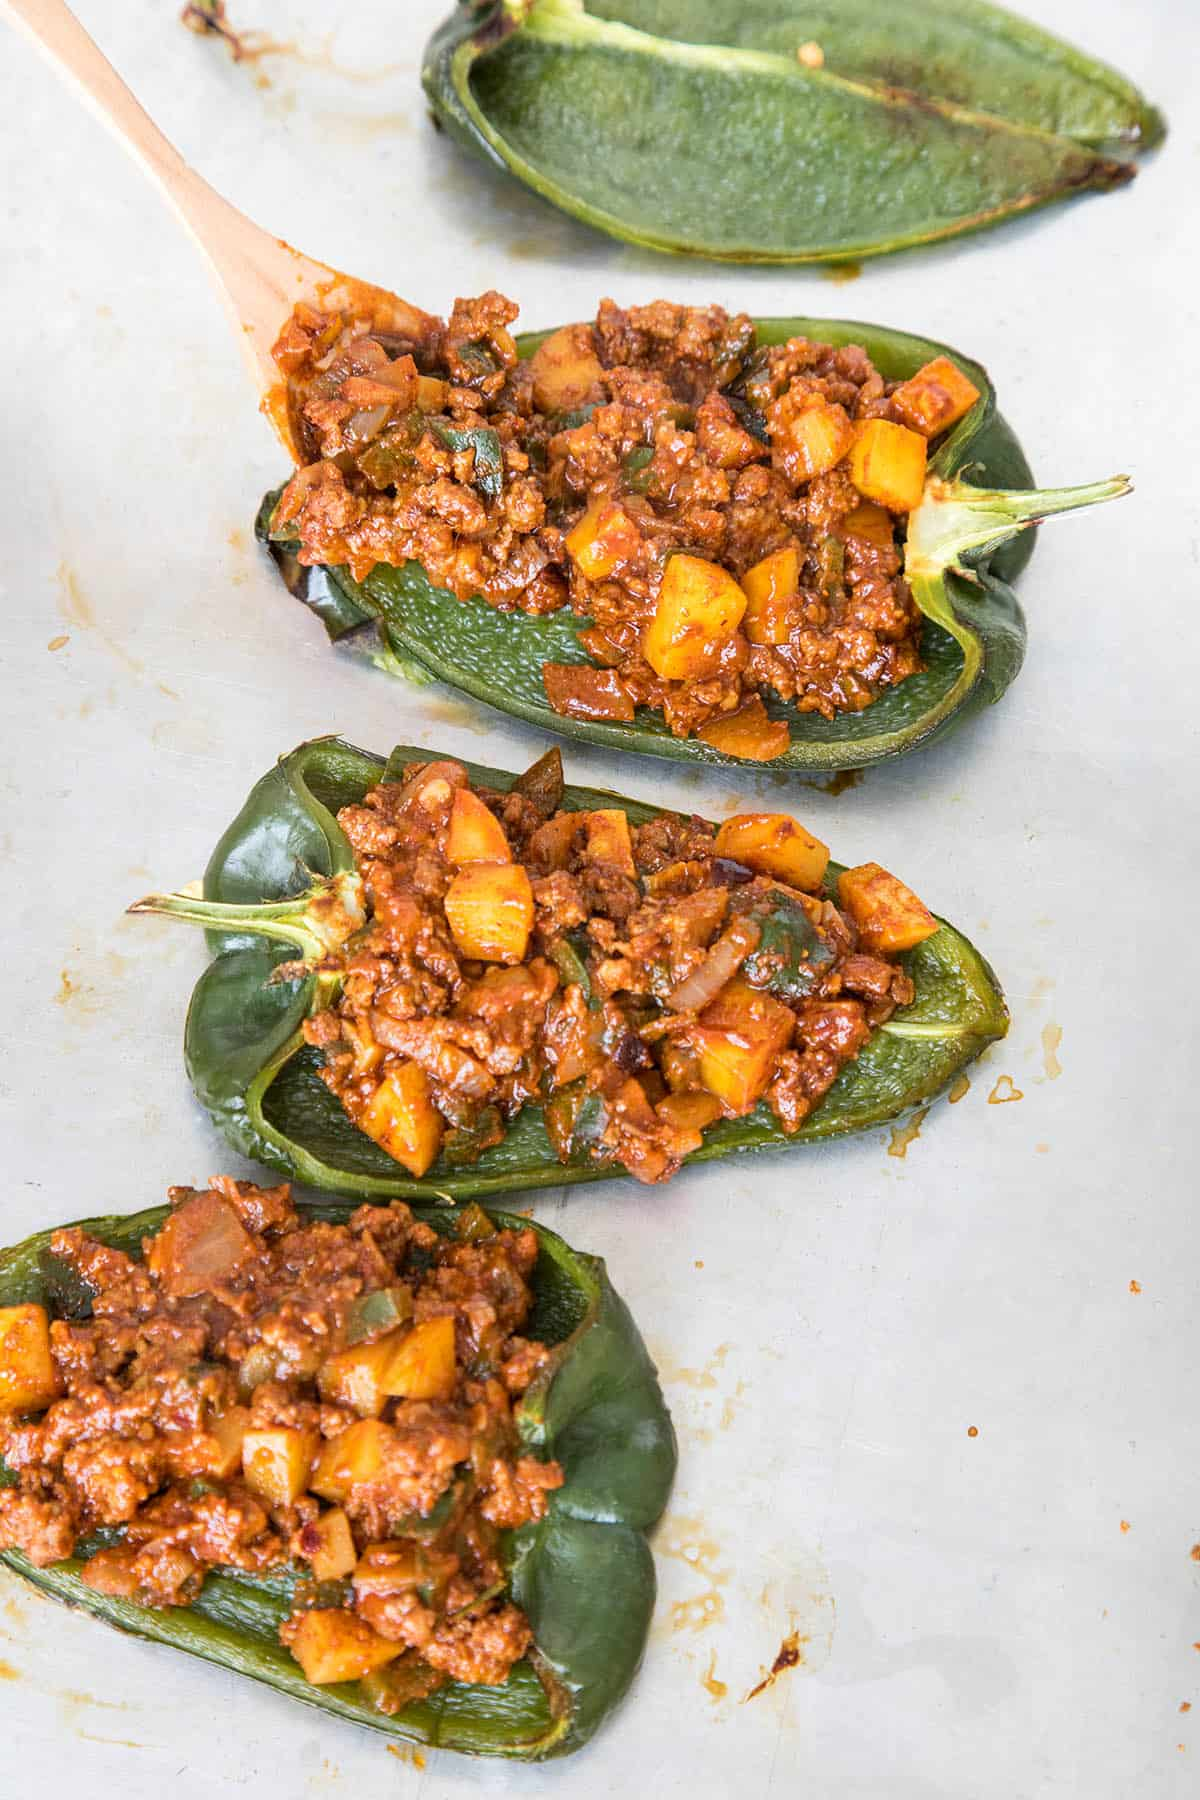 Filling the Poblano Peppers with Cooked Mexican Picadillo